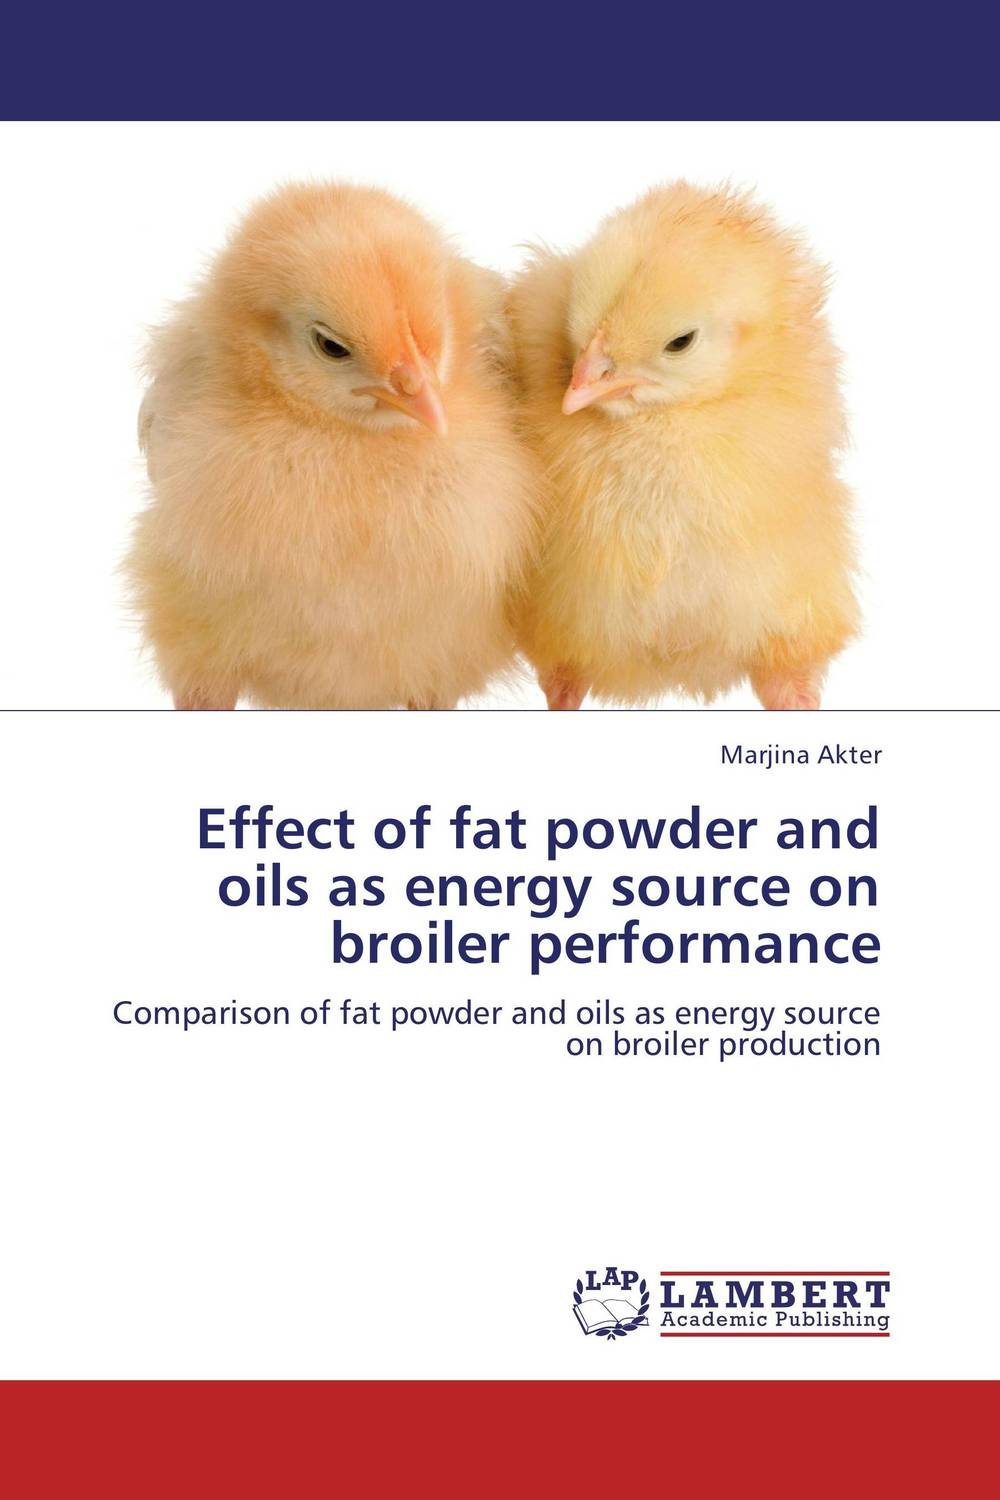 купить Effect of fat powder and oils as energy source on broiler performance недорого